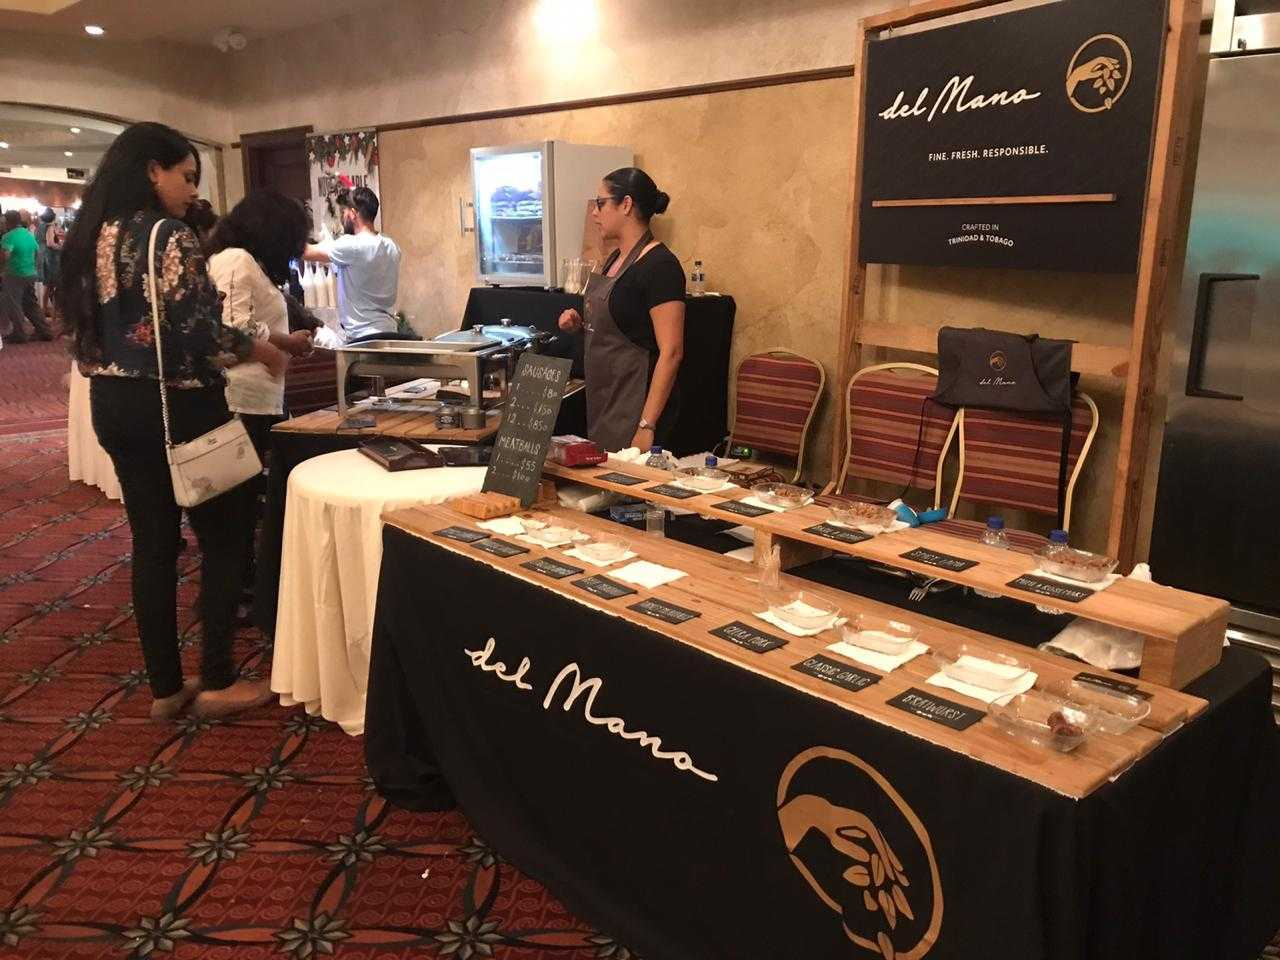 Del Mano table at Bits and Pieces 2019.